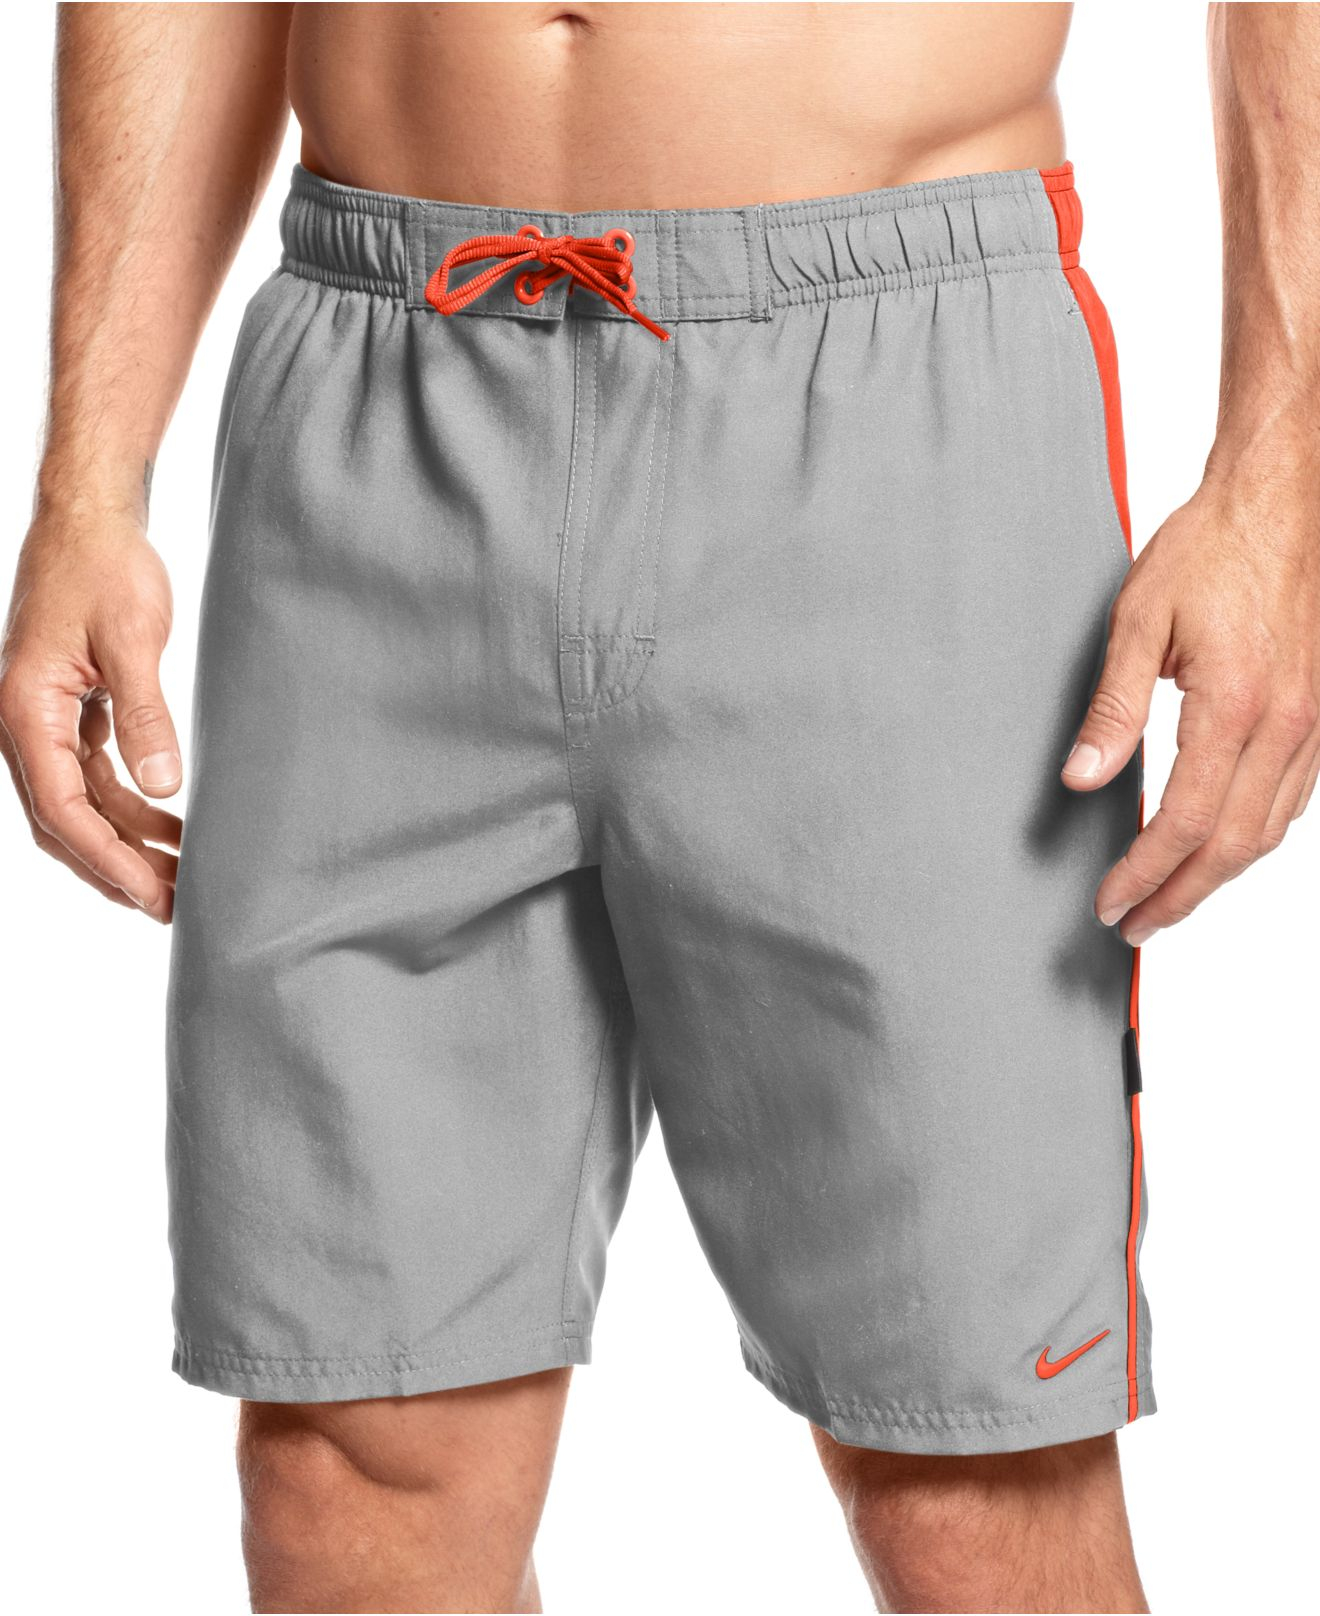 6e909f57d6 Nike Big And Tall Volley Swim Trunks in Gray for Men - Lyst